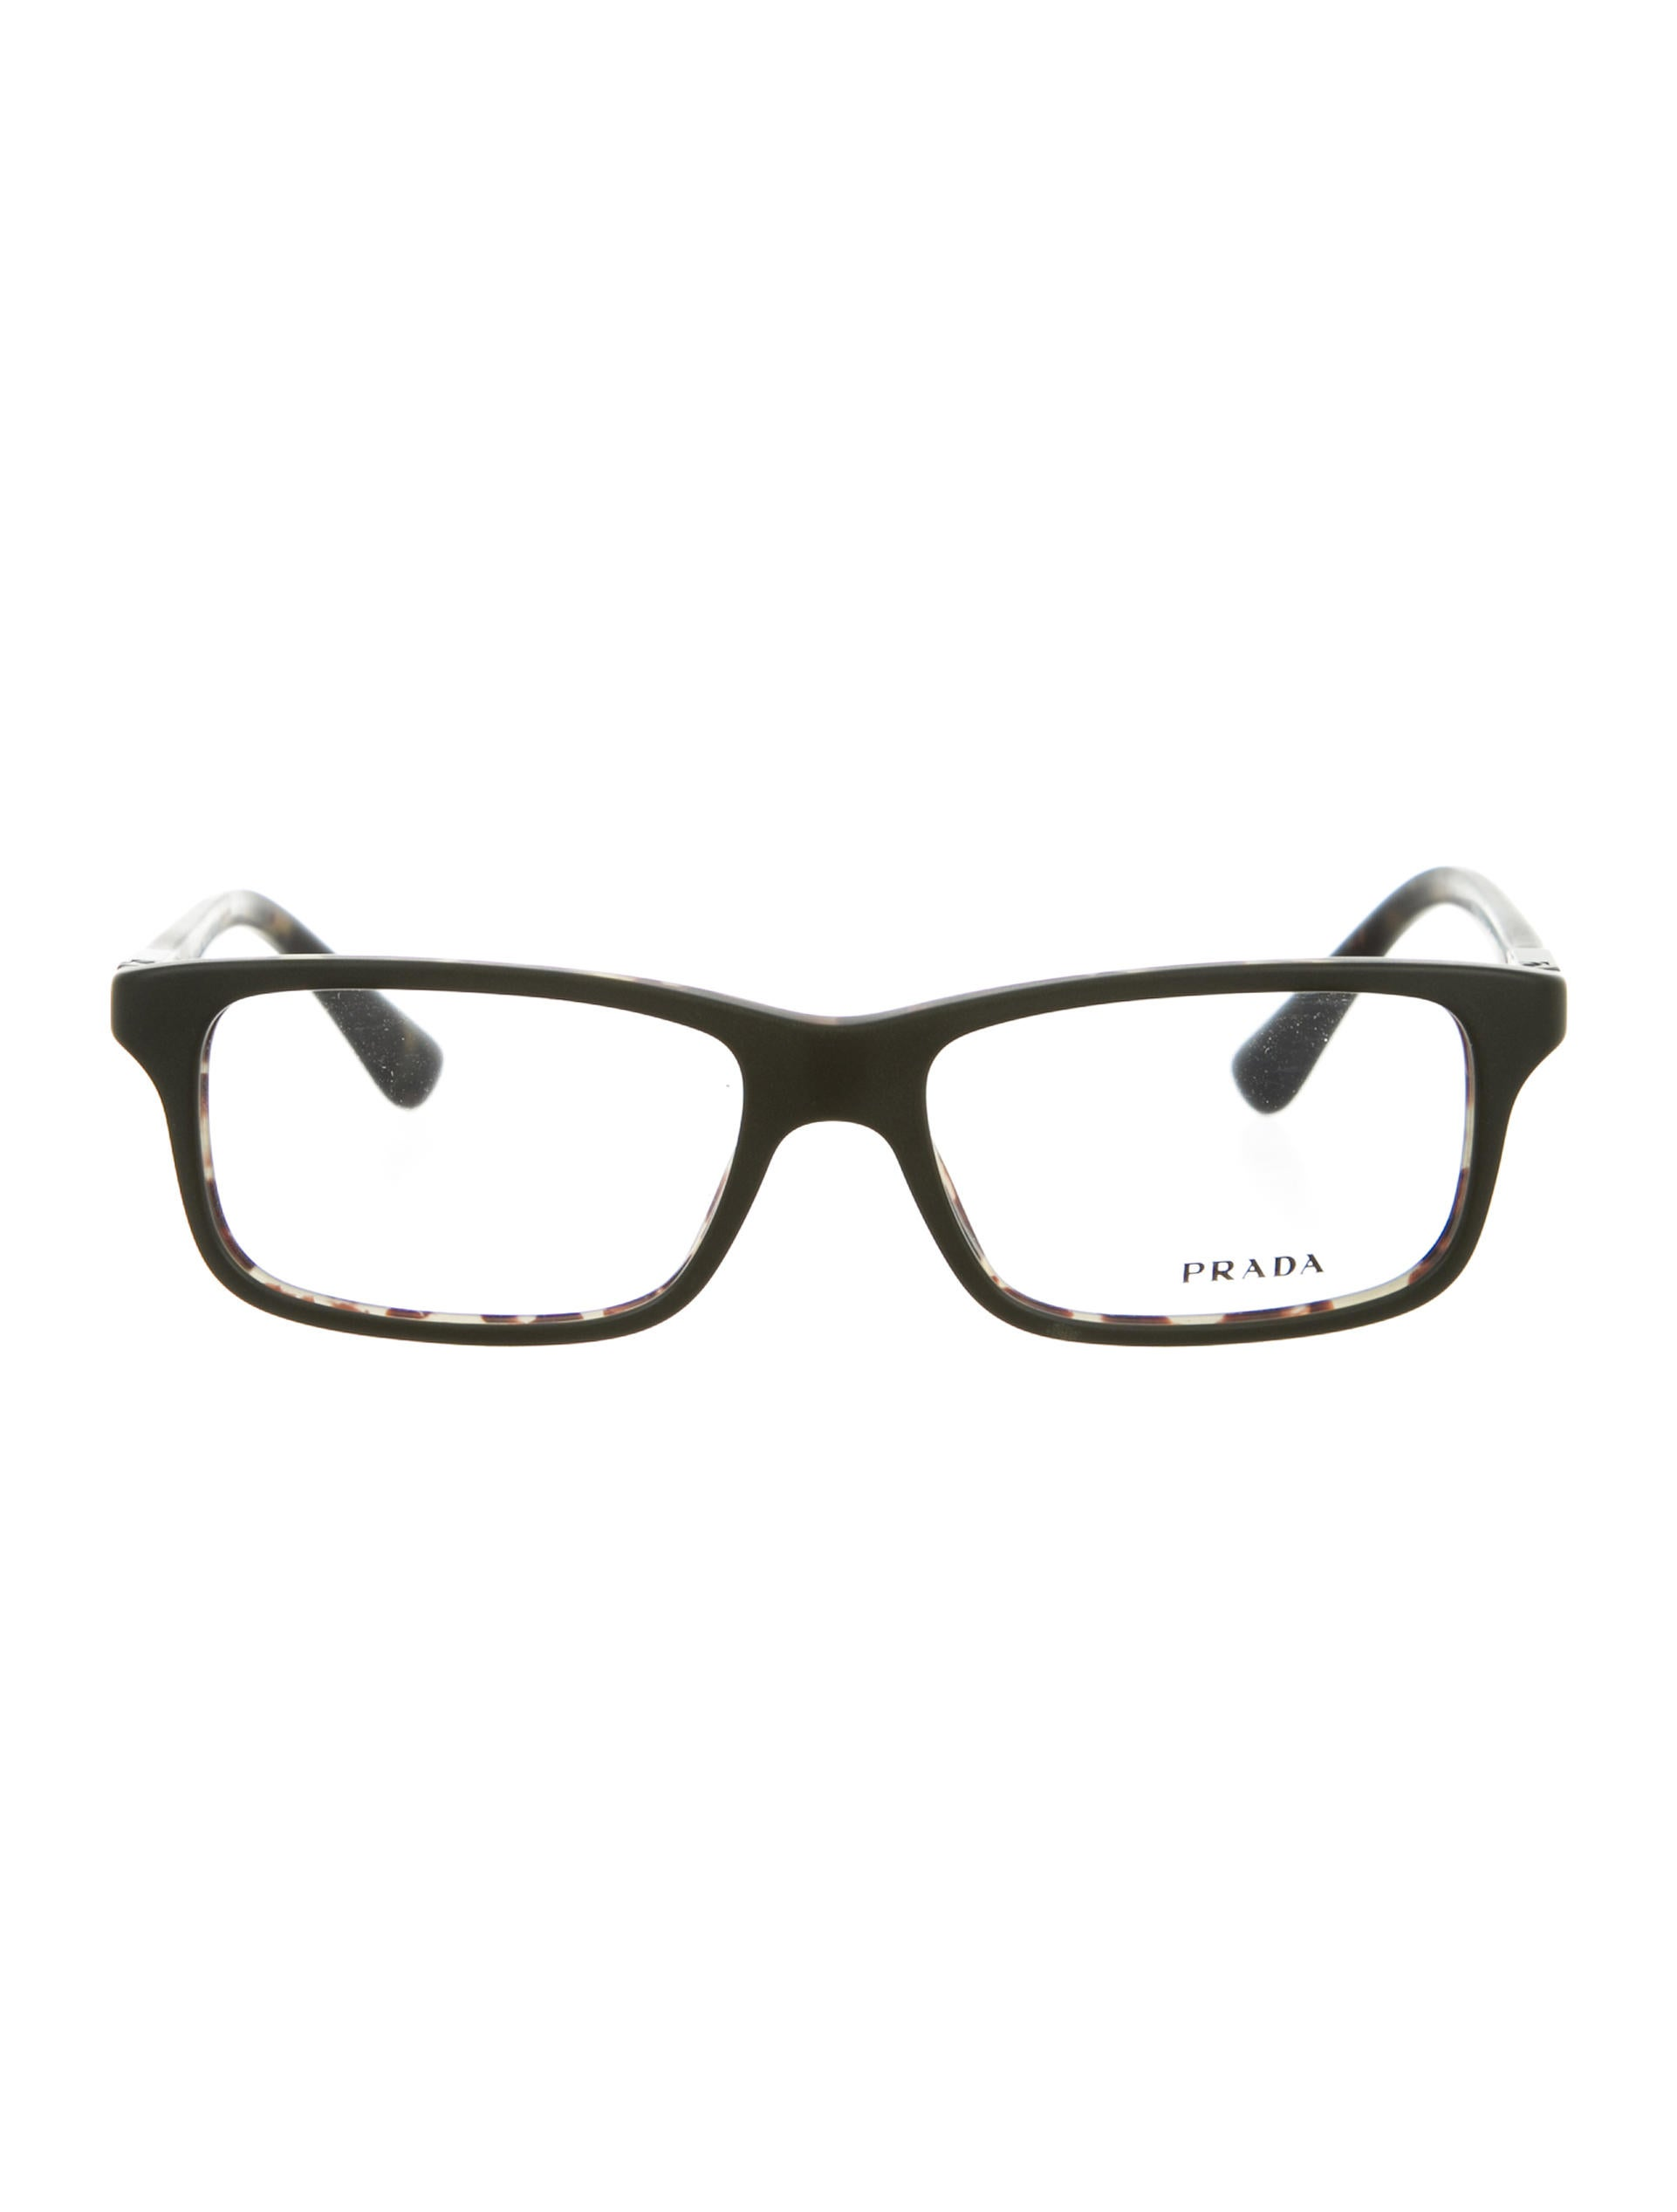 prada square logo eyeglasses w tags accessories